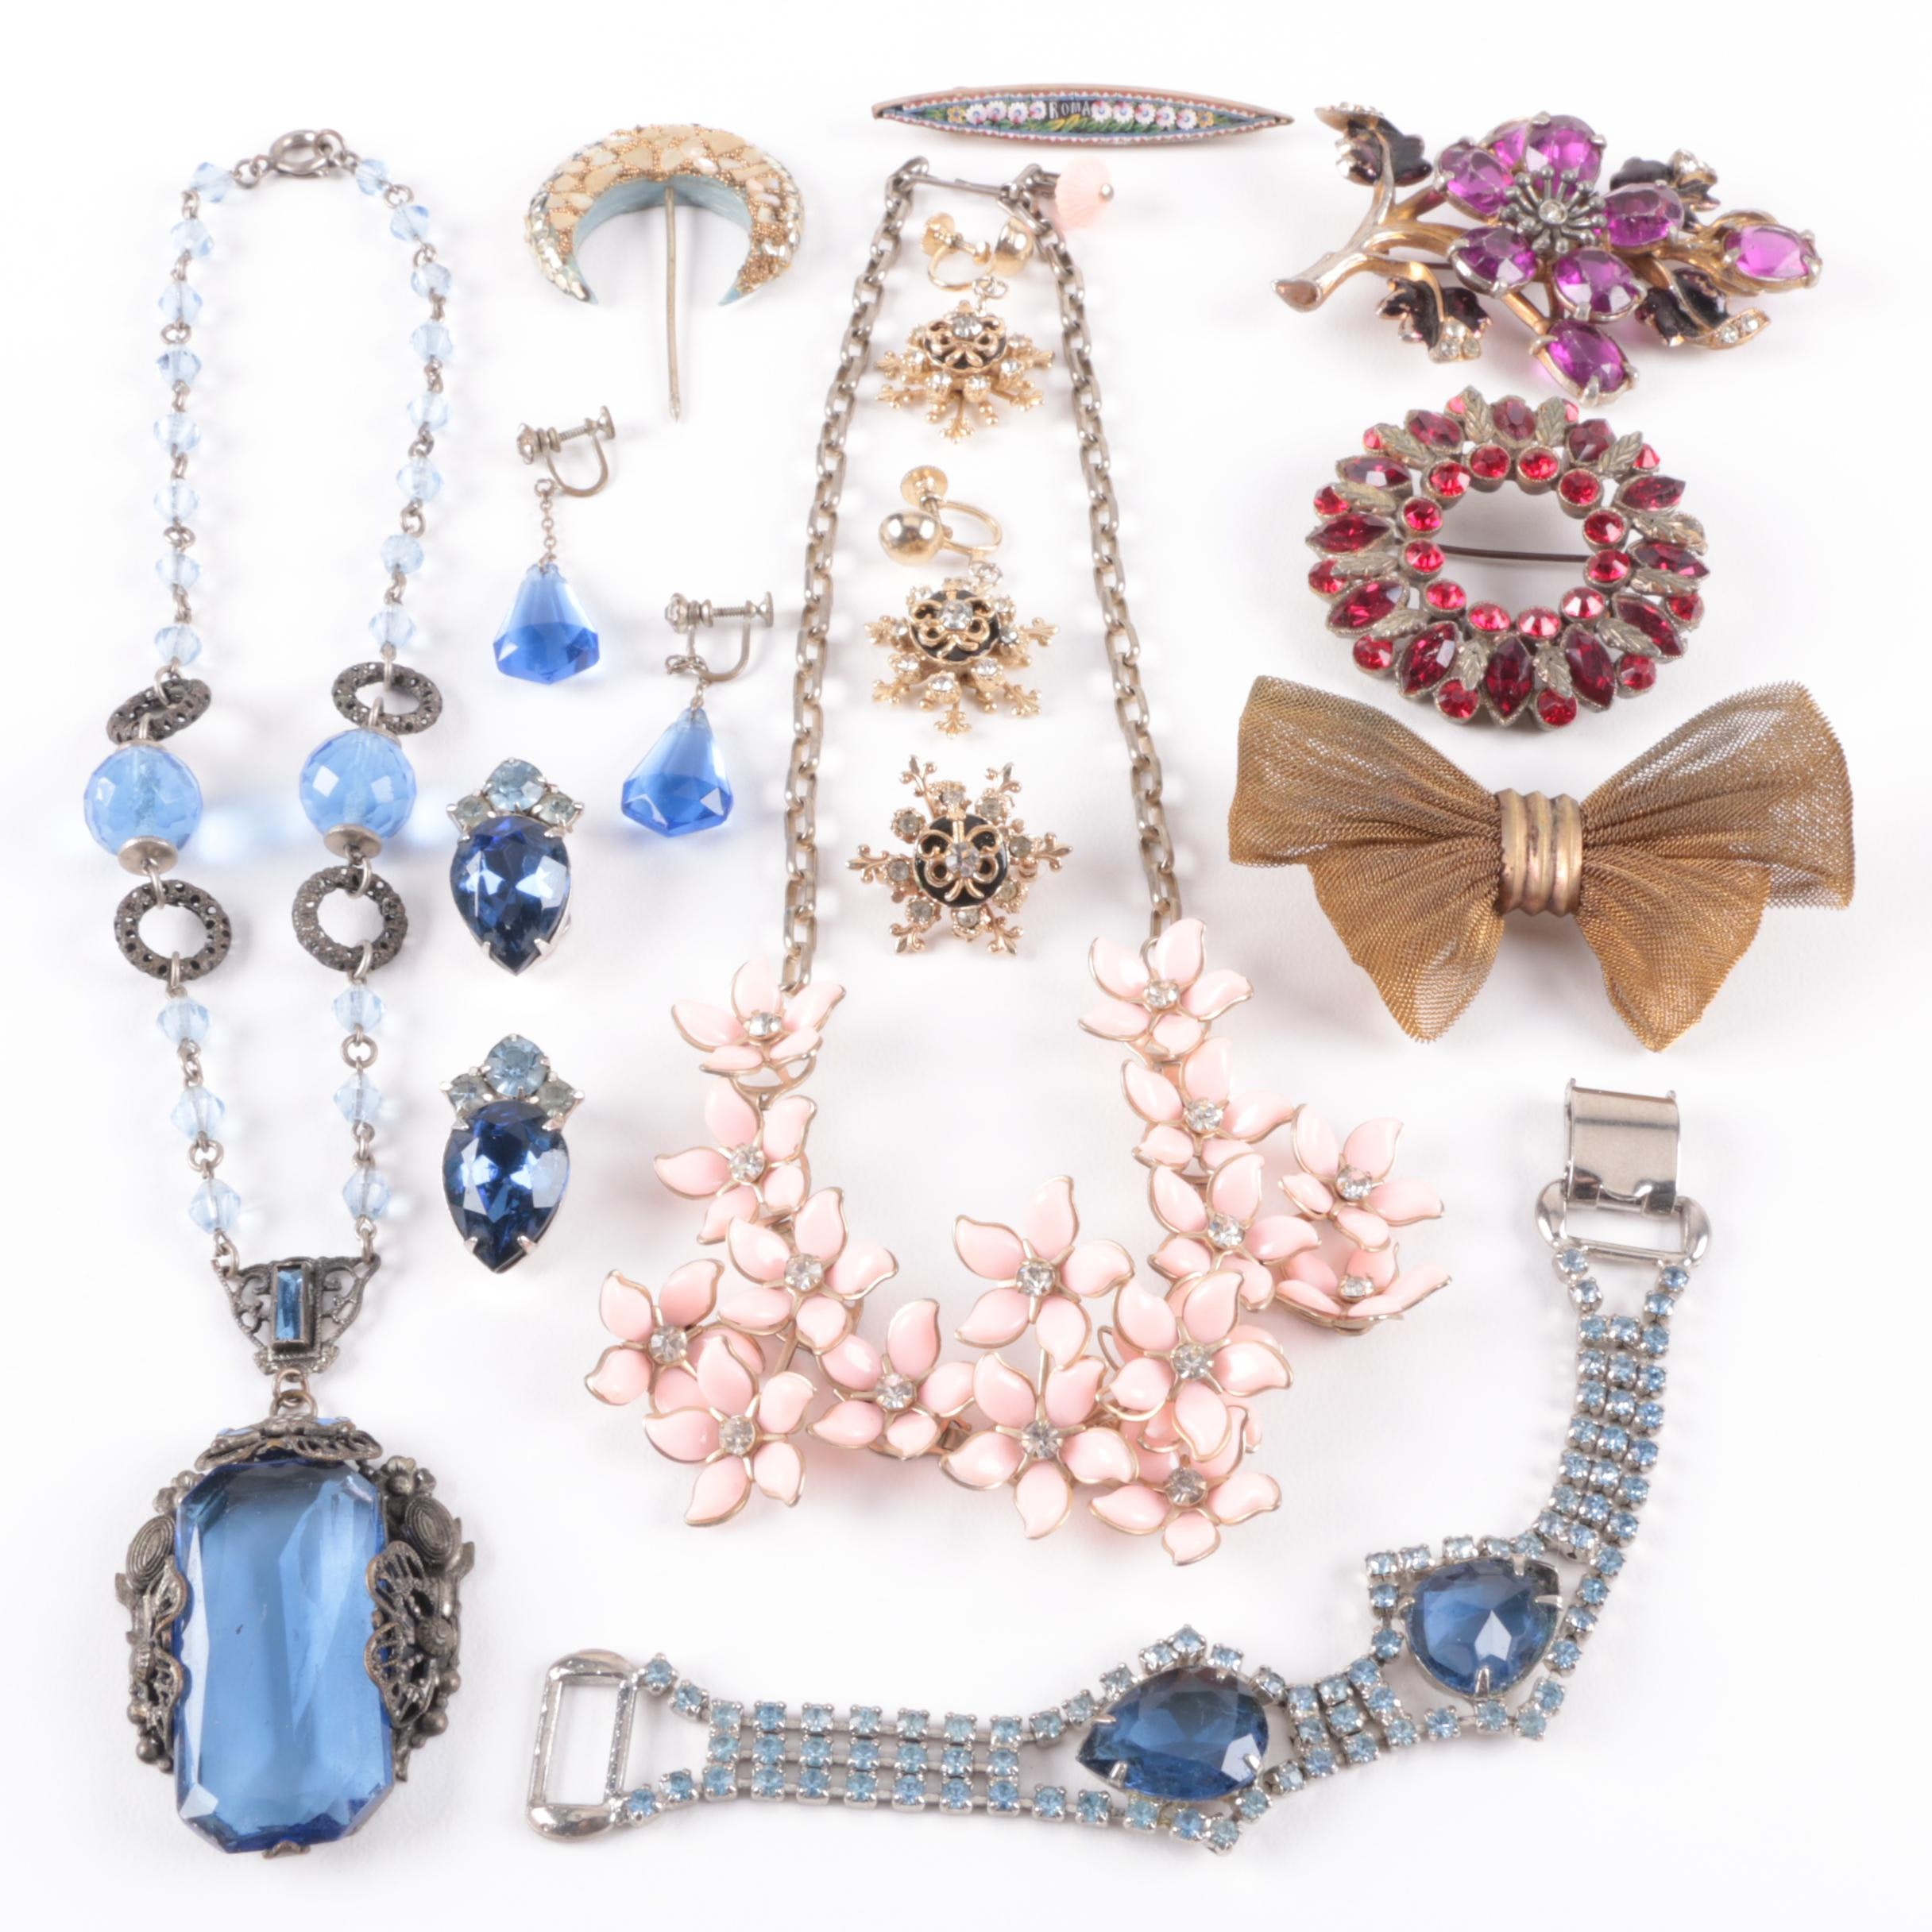 Assorted Vintage Costume Jewelry Including a Micro Mosaic Brooch